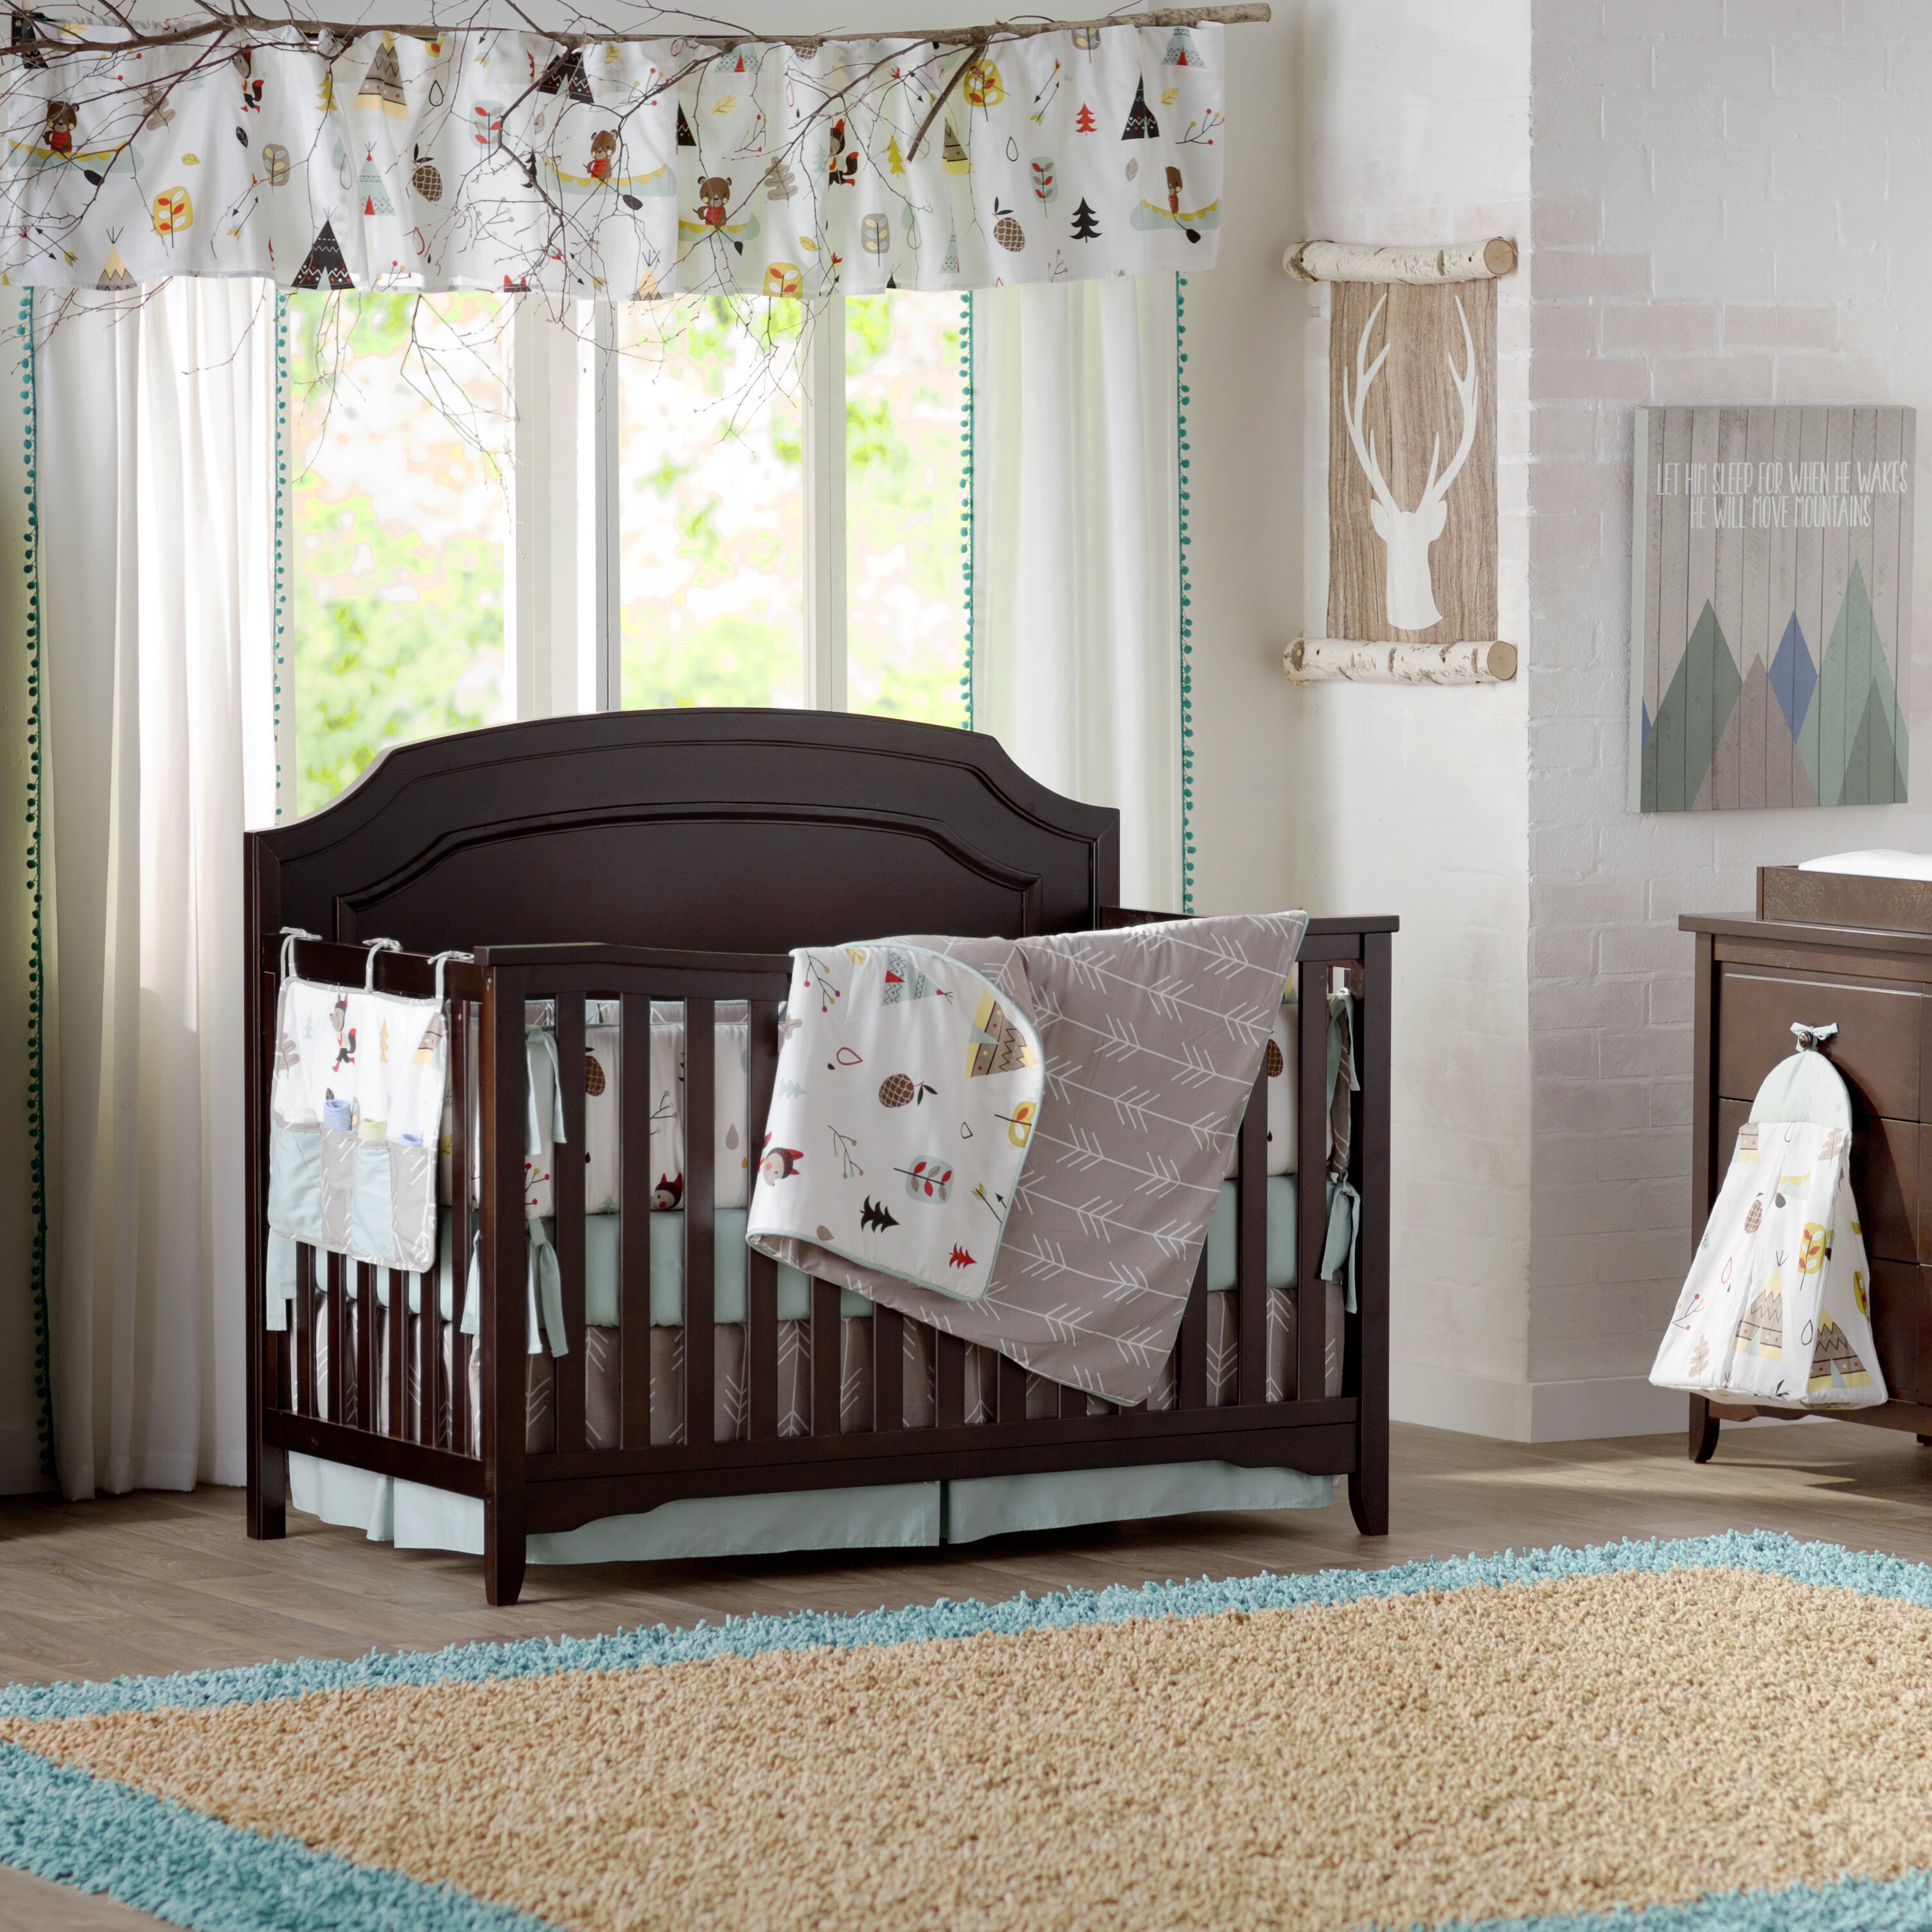 reviews wayfair piece ca designs sweet nursery crib pdp kids bed adventure set bedding outdoor baby jojo